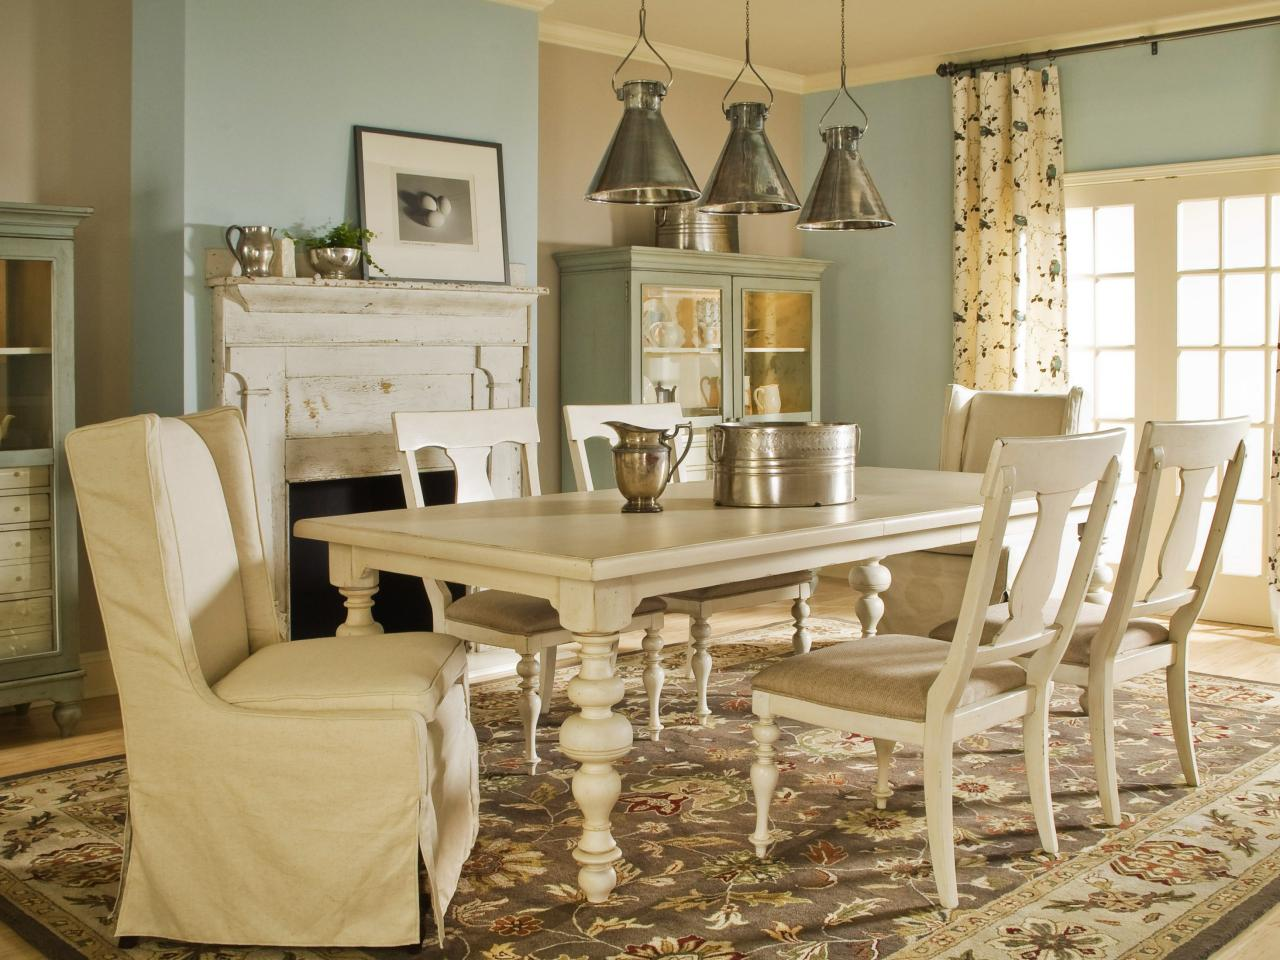 Spice up your dining room with stylish slipcovers living for Living dining room decor ideas